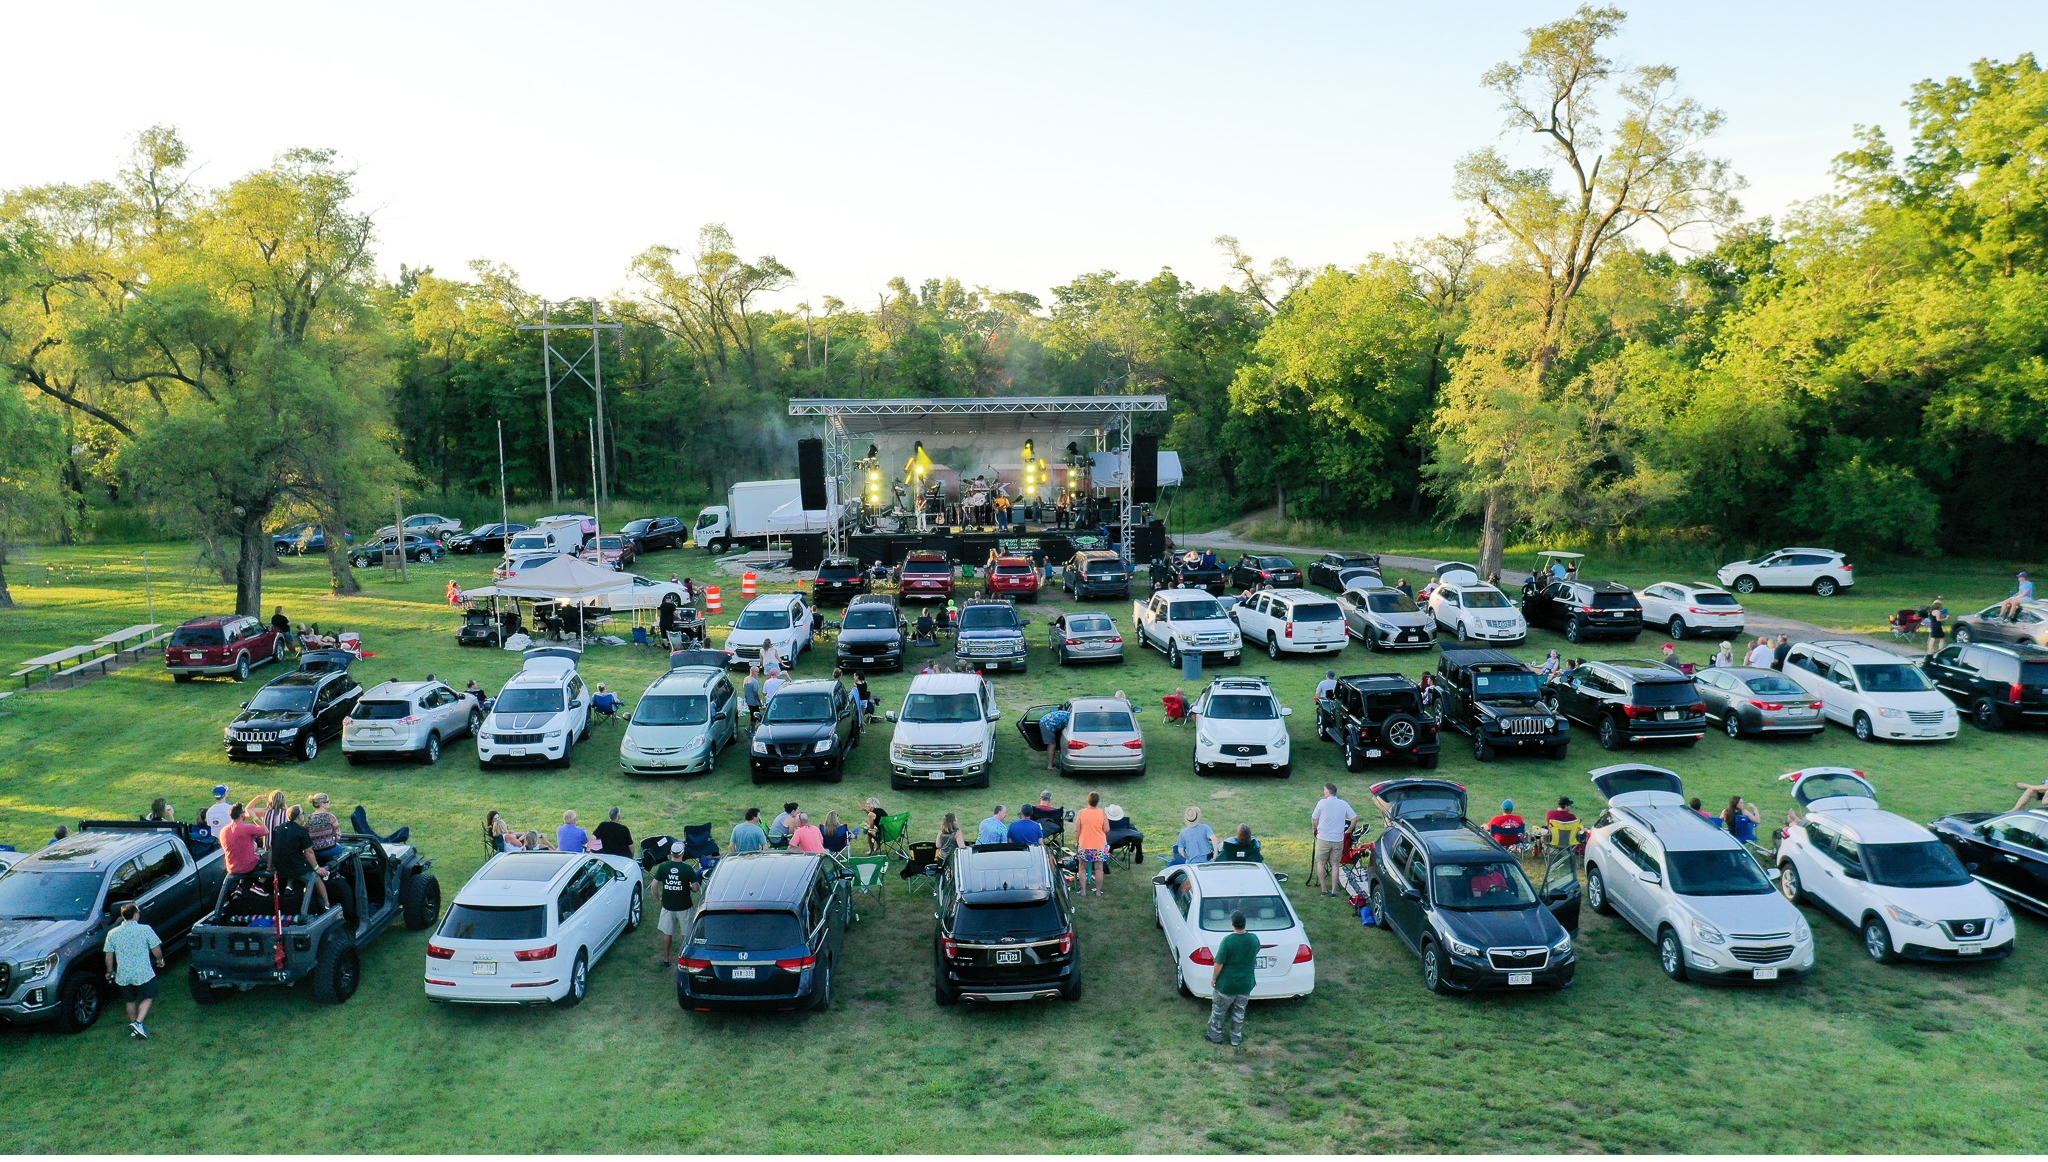 Cars sit in rows at Falconwood Park for drive-in concert